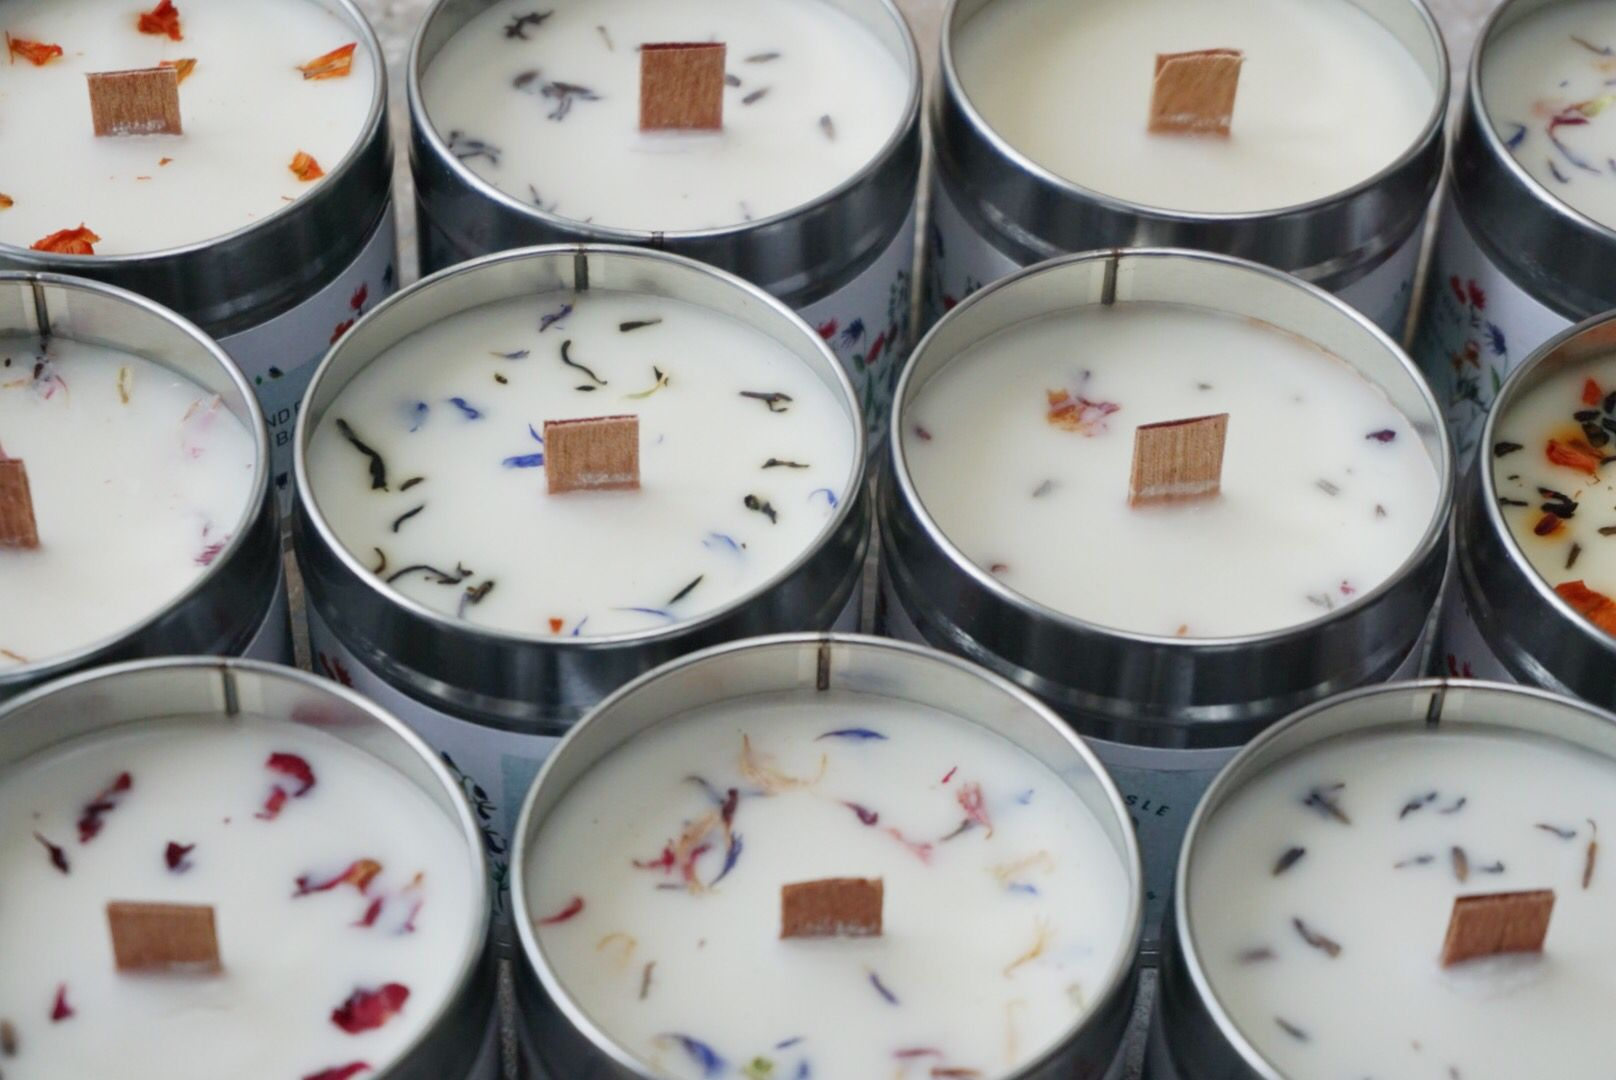 Handmade soy candles with dried petals 🌿 Soy candles